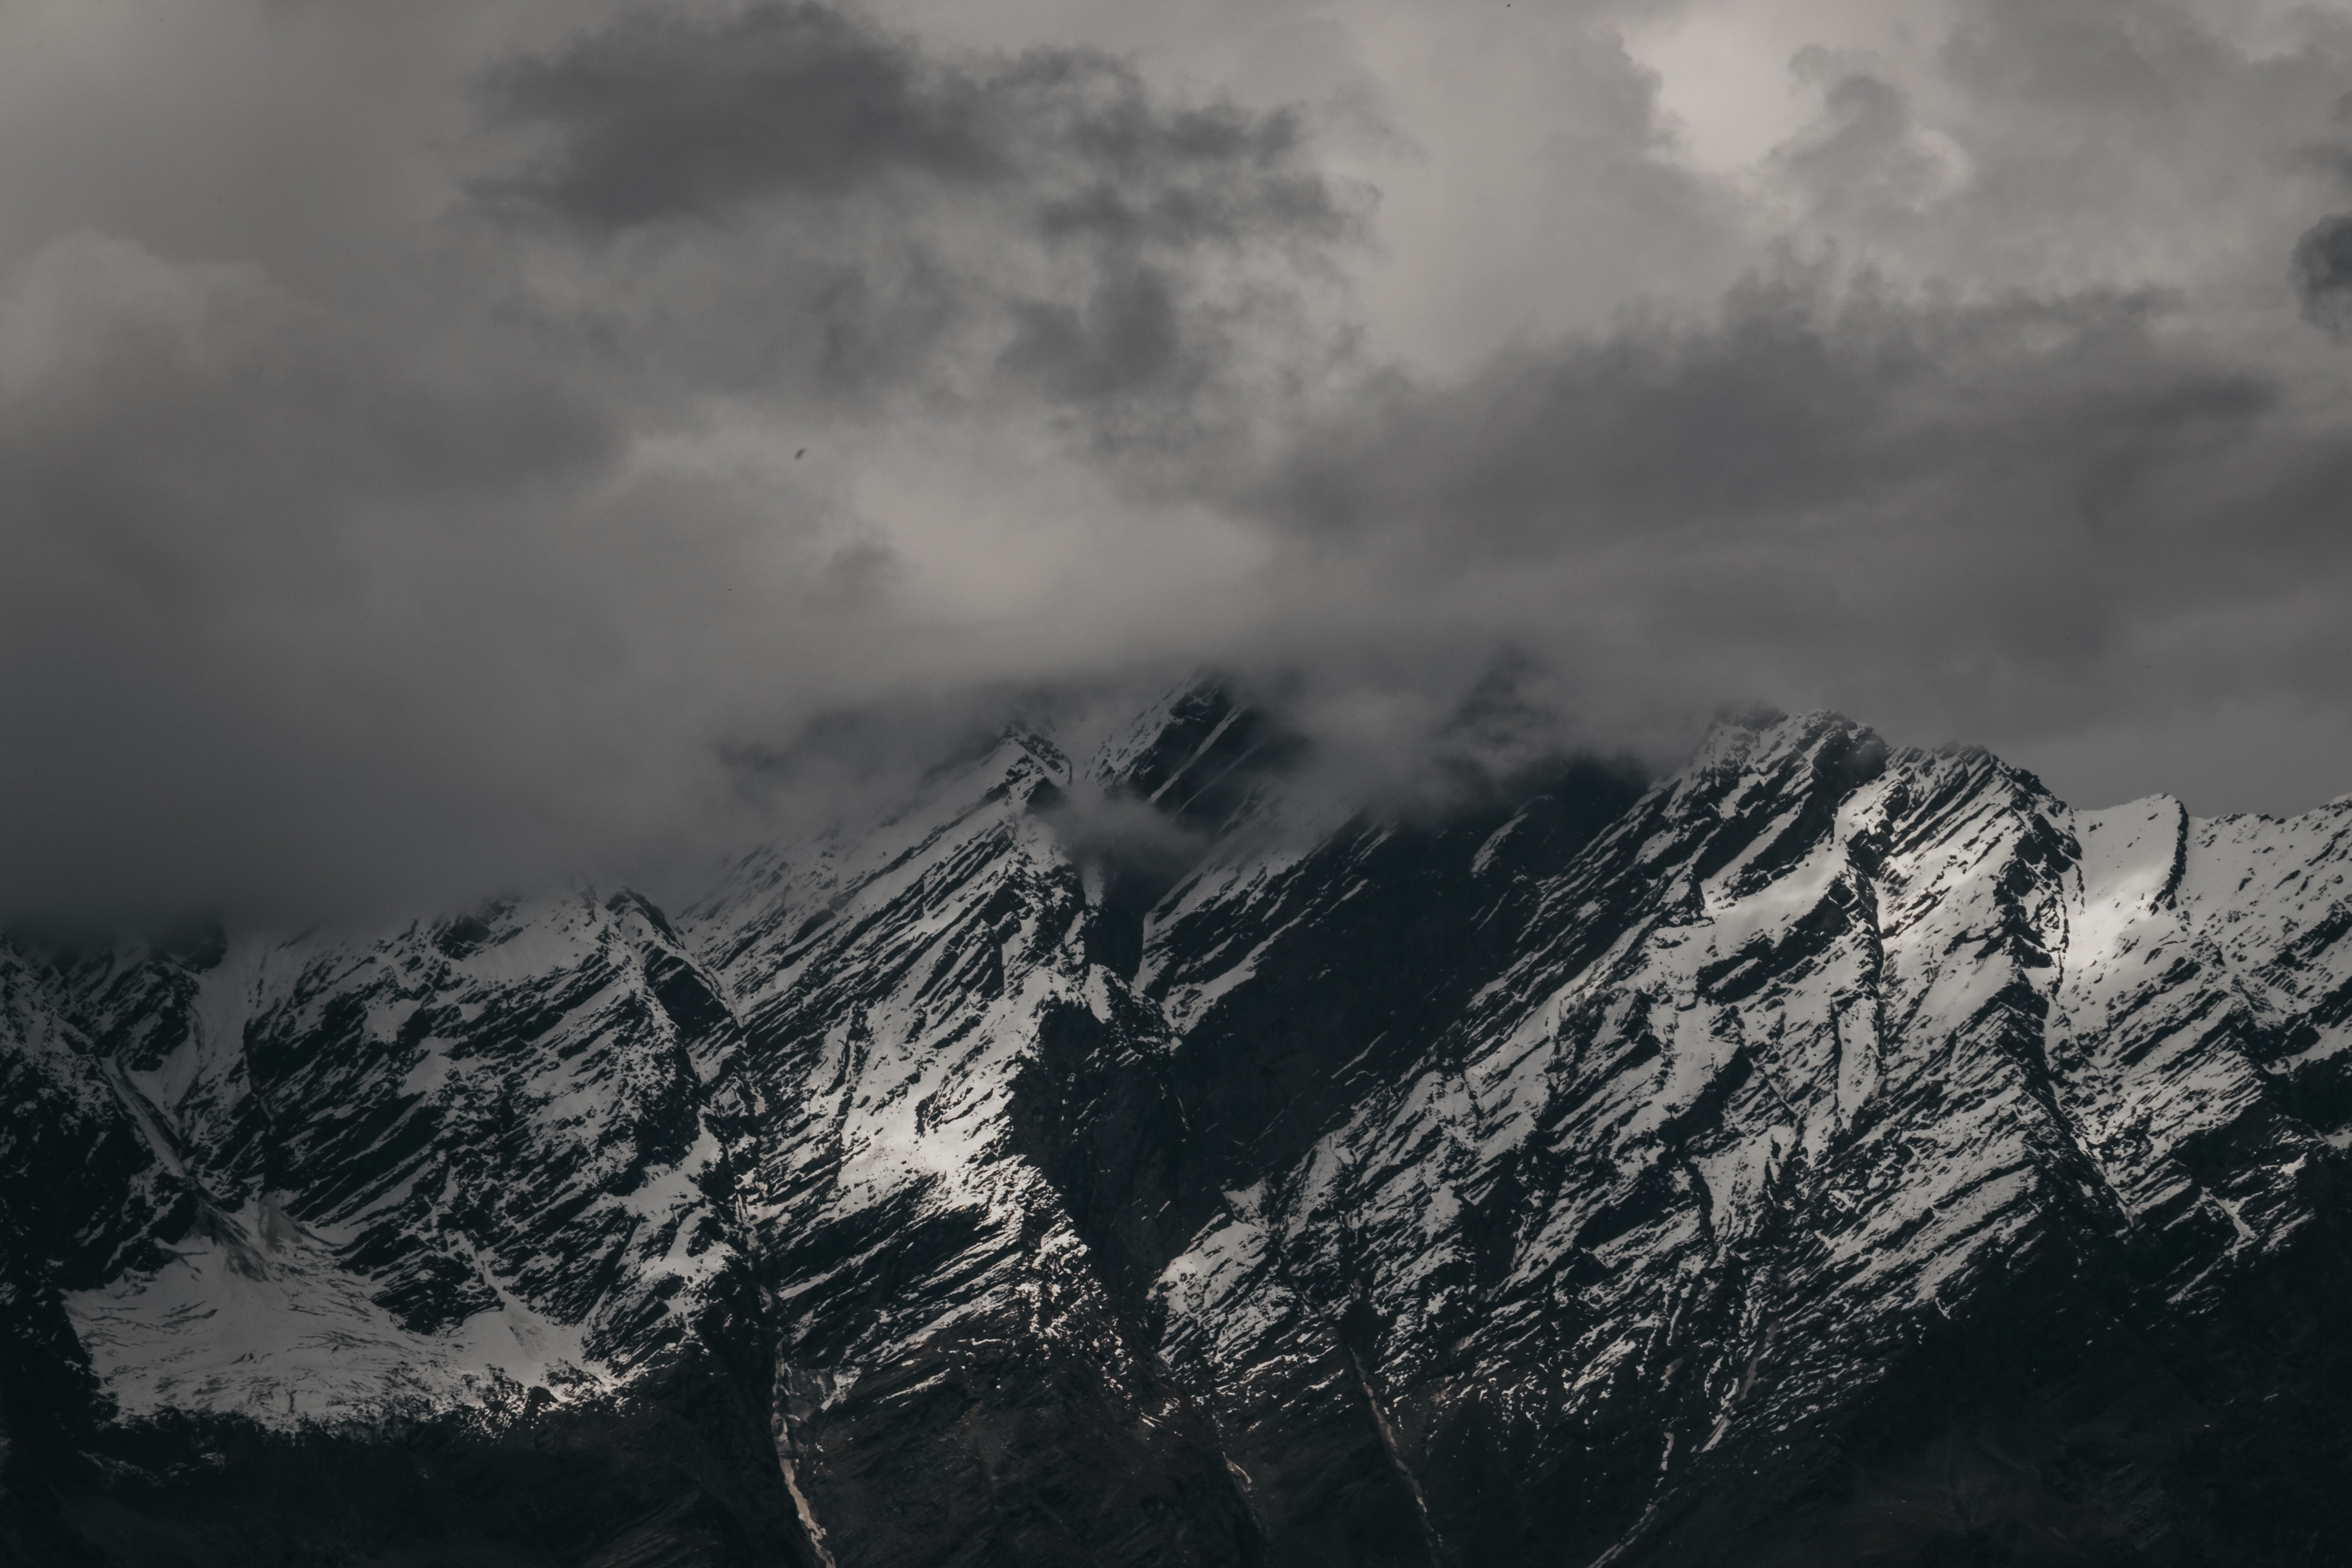 A snow-capped mountain during cloudy weather